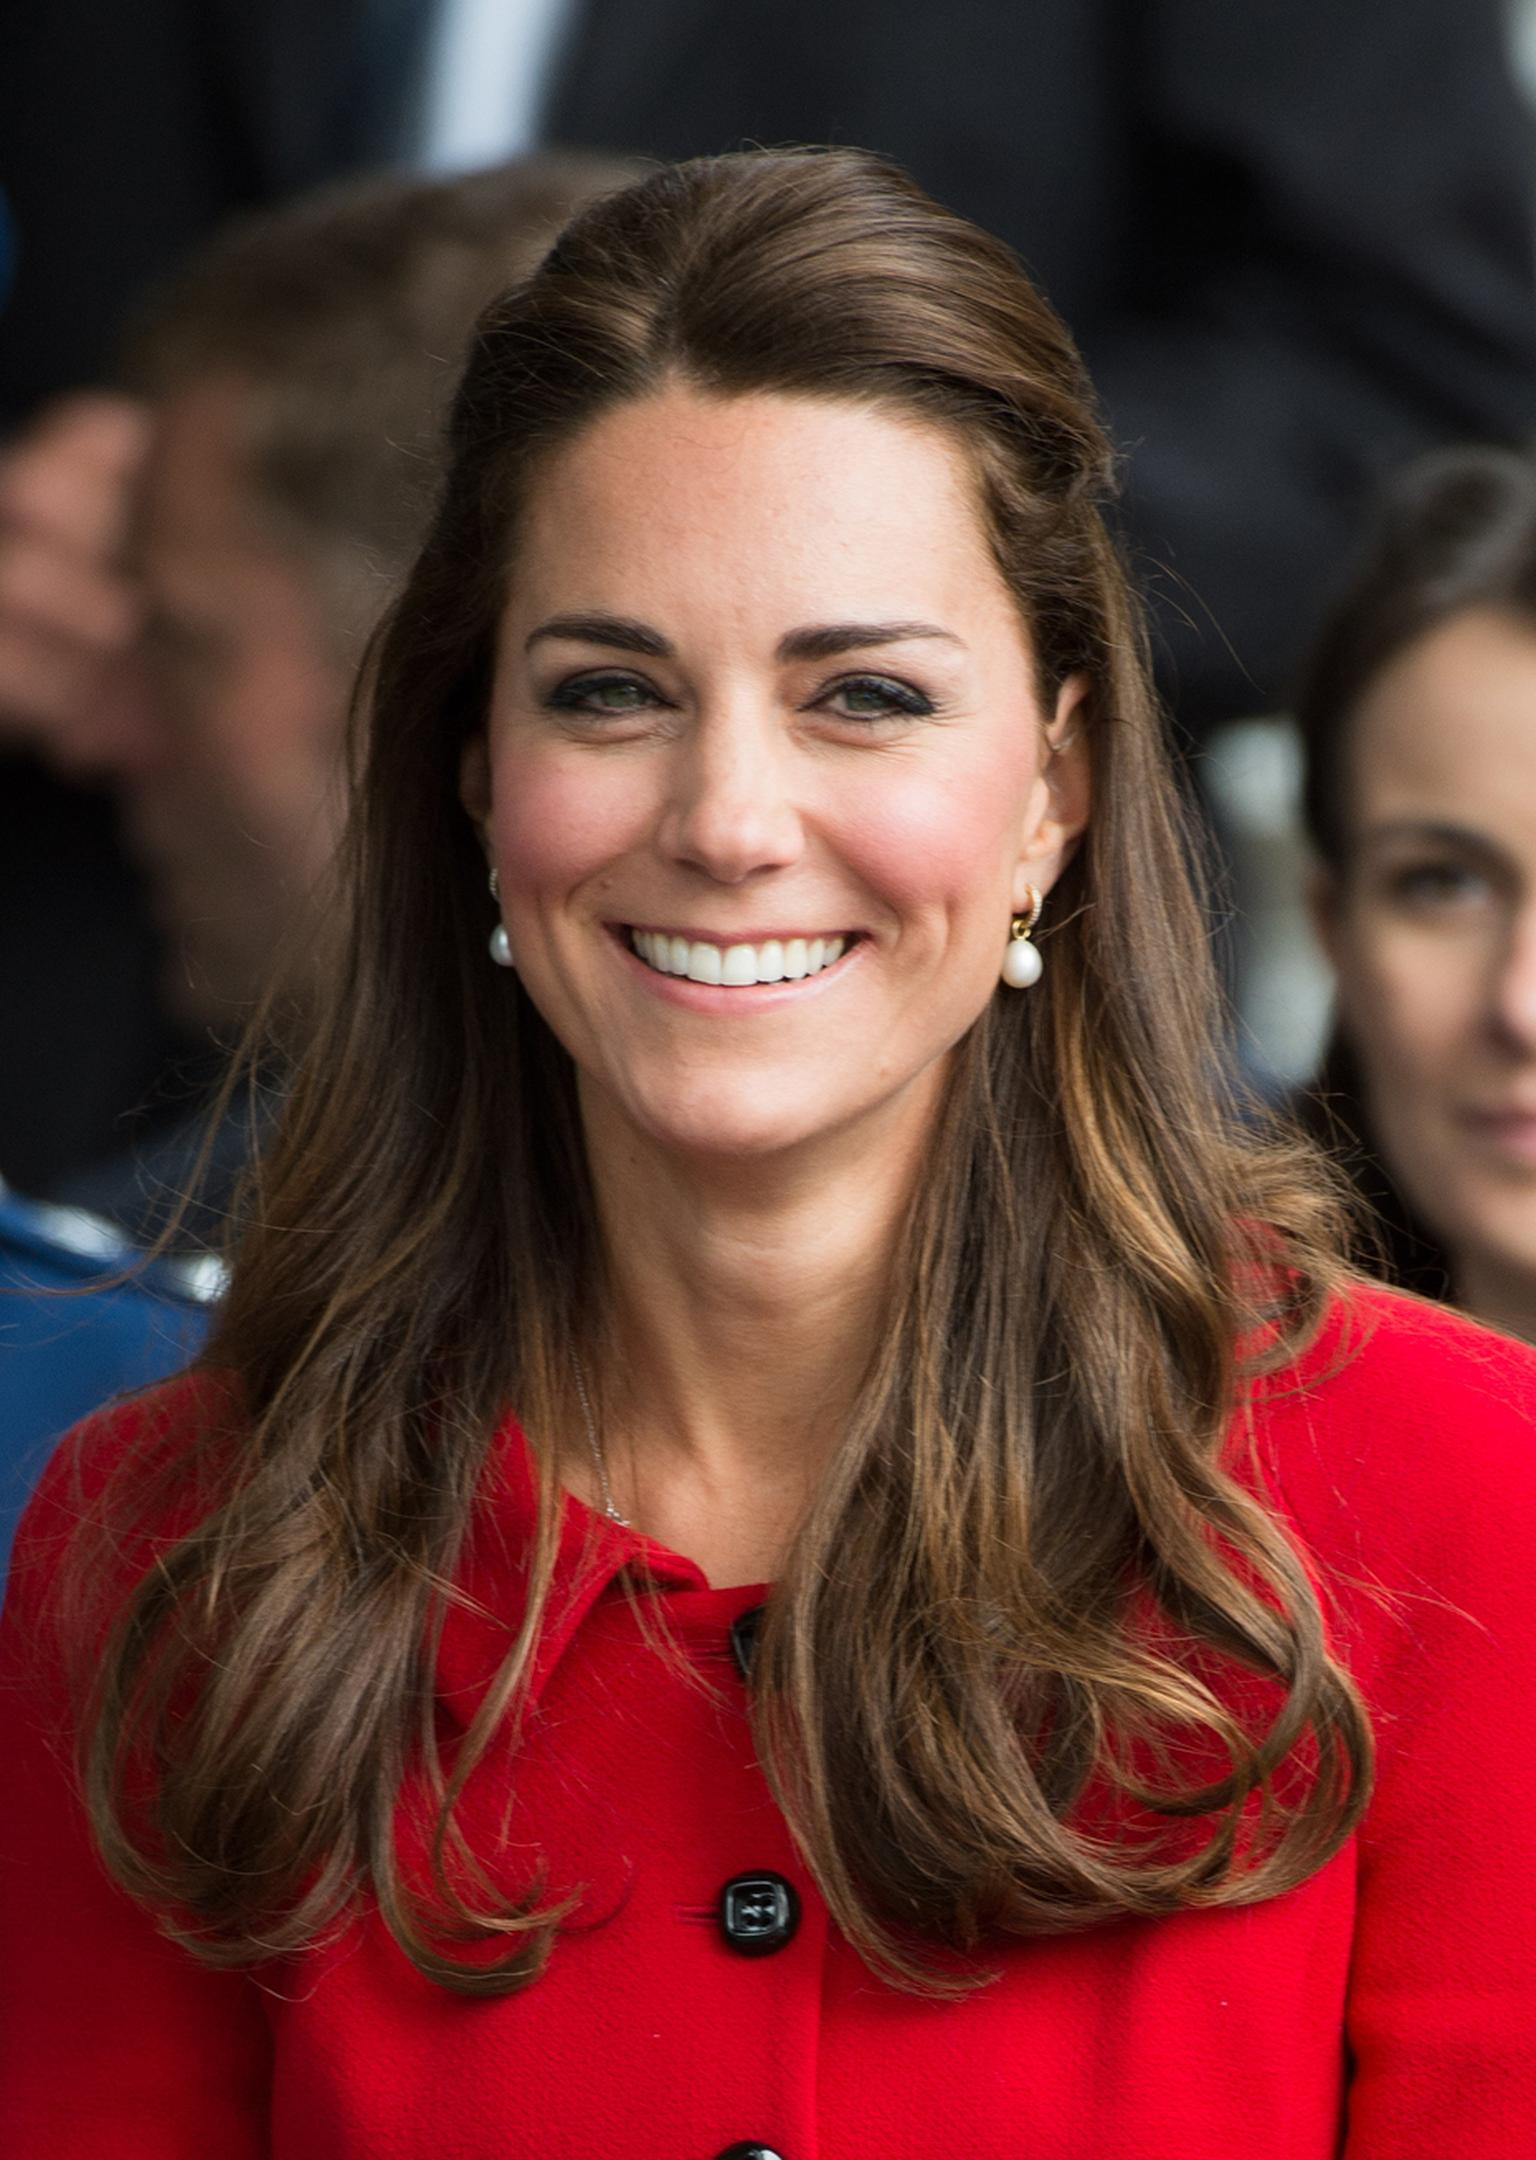 Kate Middleton, the Duchess of Cambridge, wearing Annoushka pearl drop earrings during the Spring 2014 Royal Tour of Australia and New Zealand.